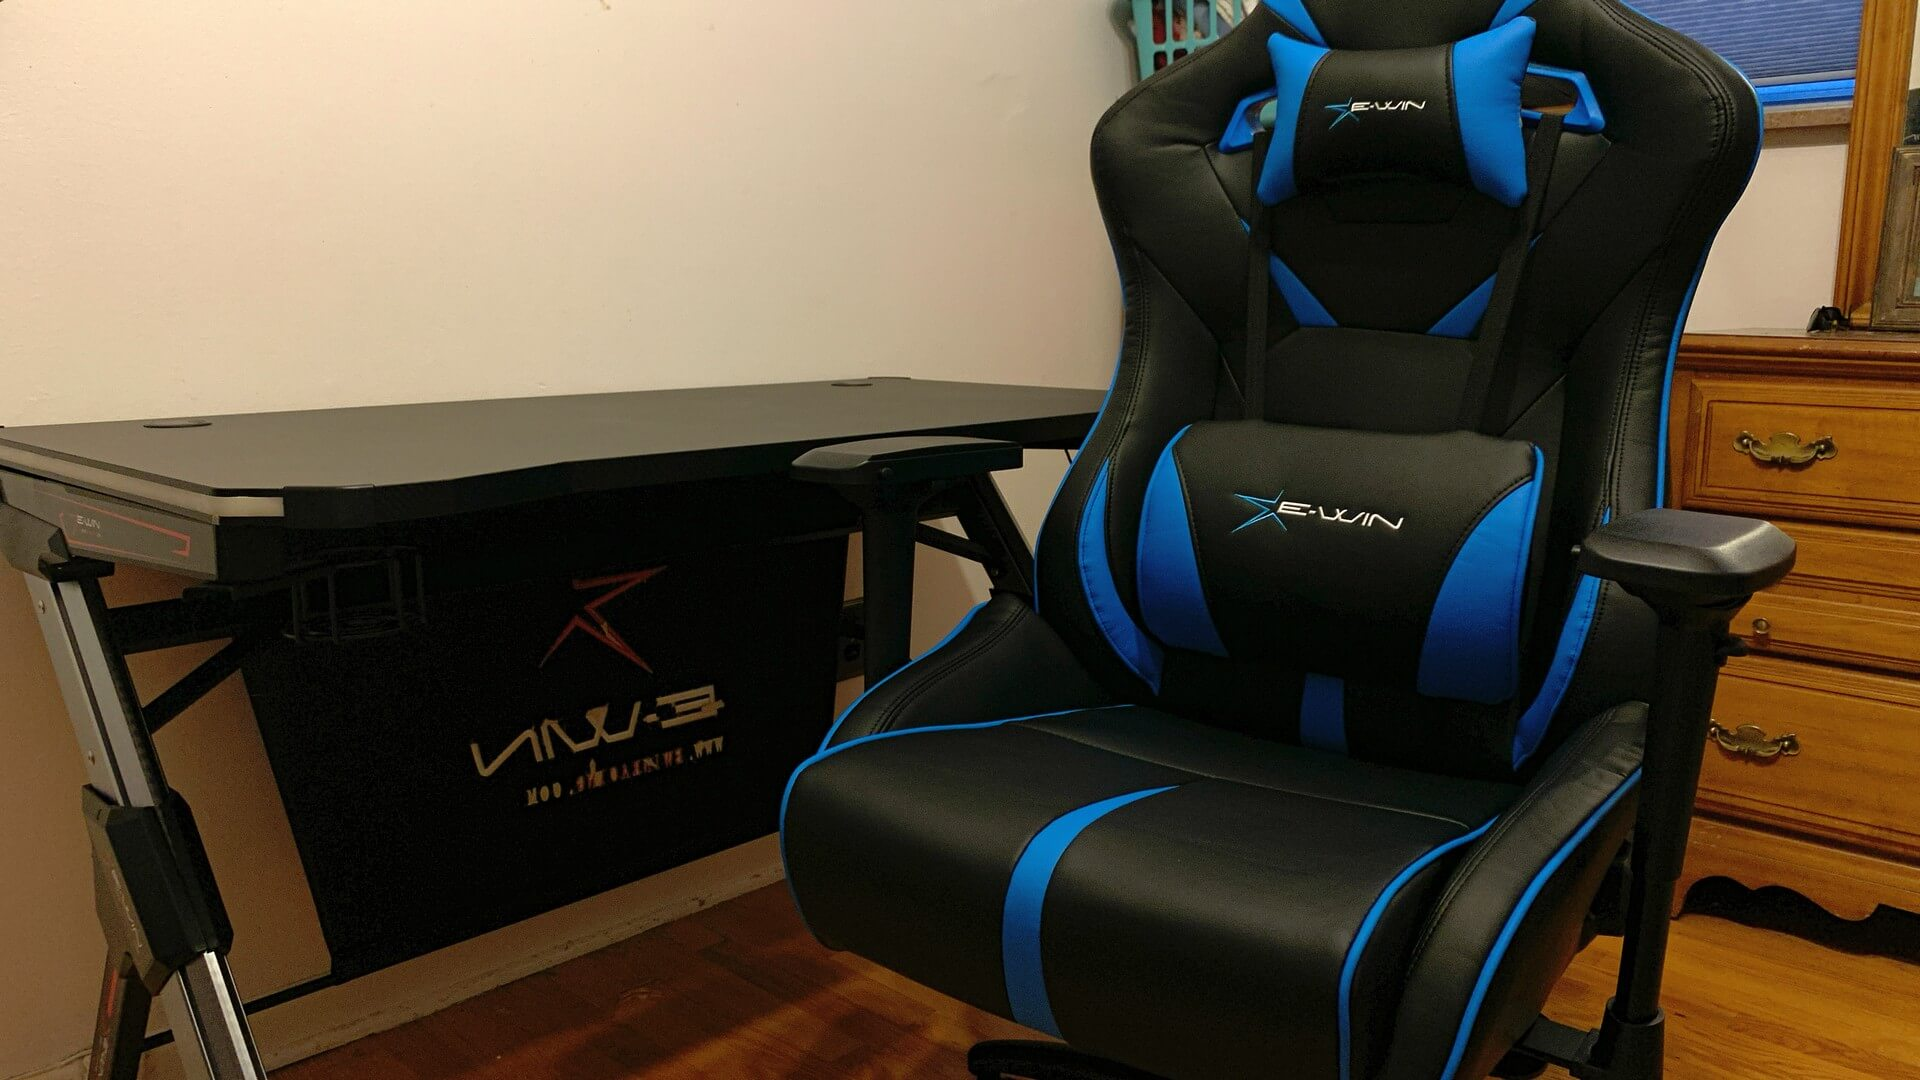 E-WIN Flash XL Size Series Gaming Chair Review: A Quality Choice!